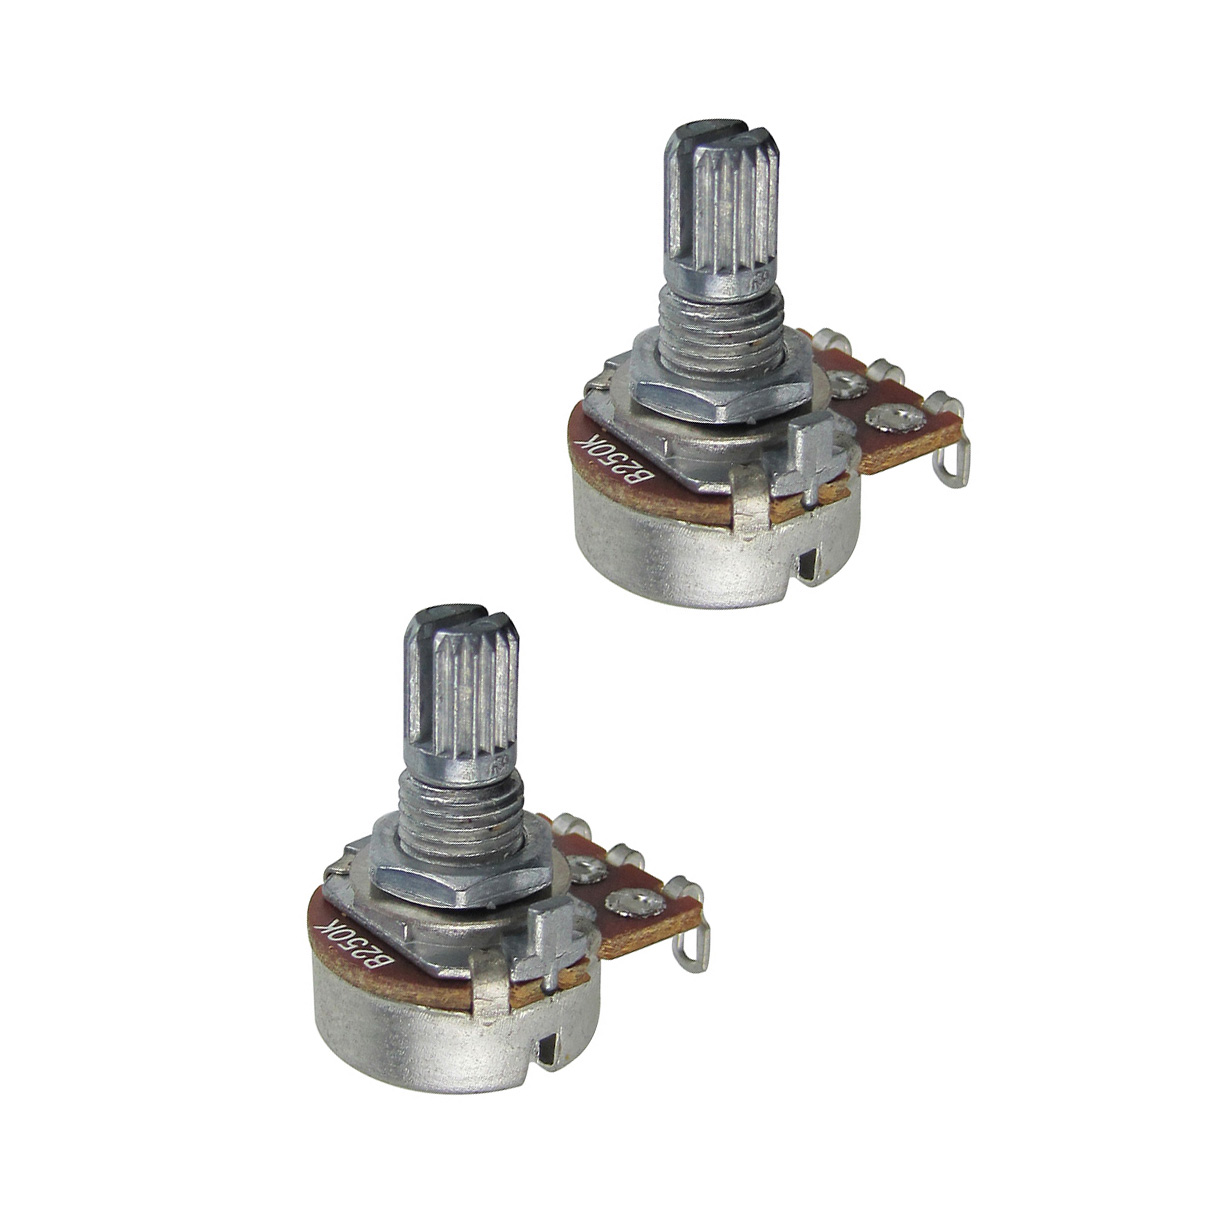 what are potentiometers used for